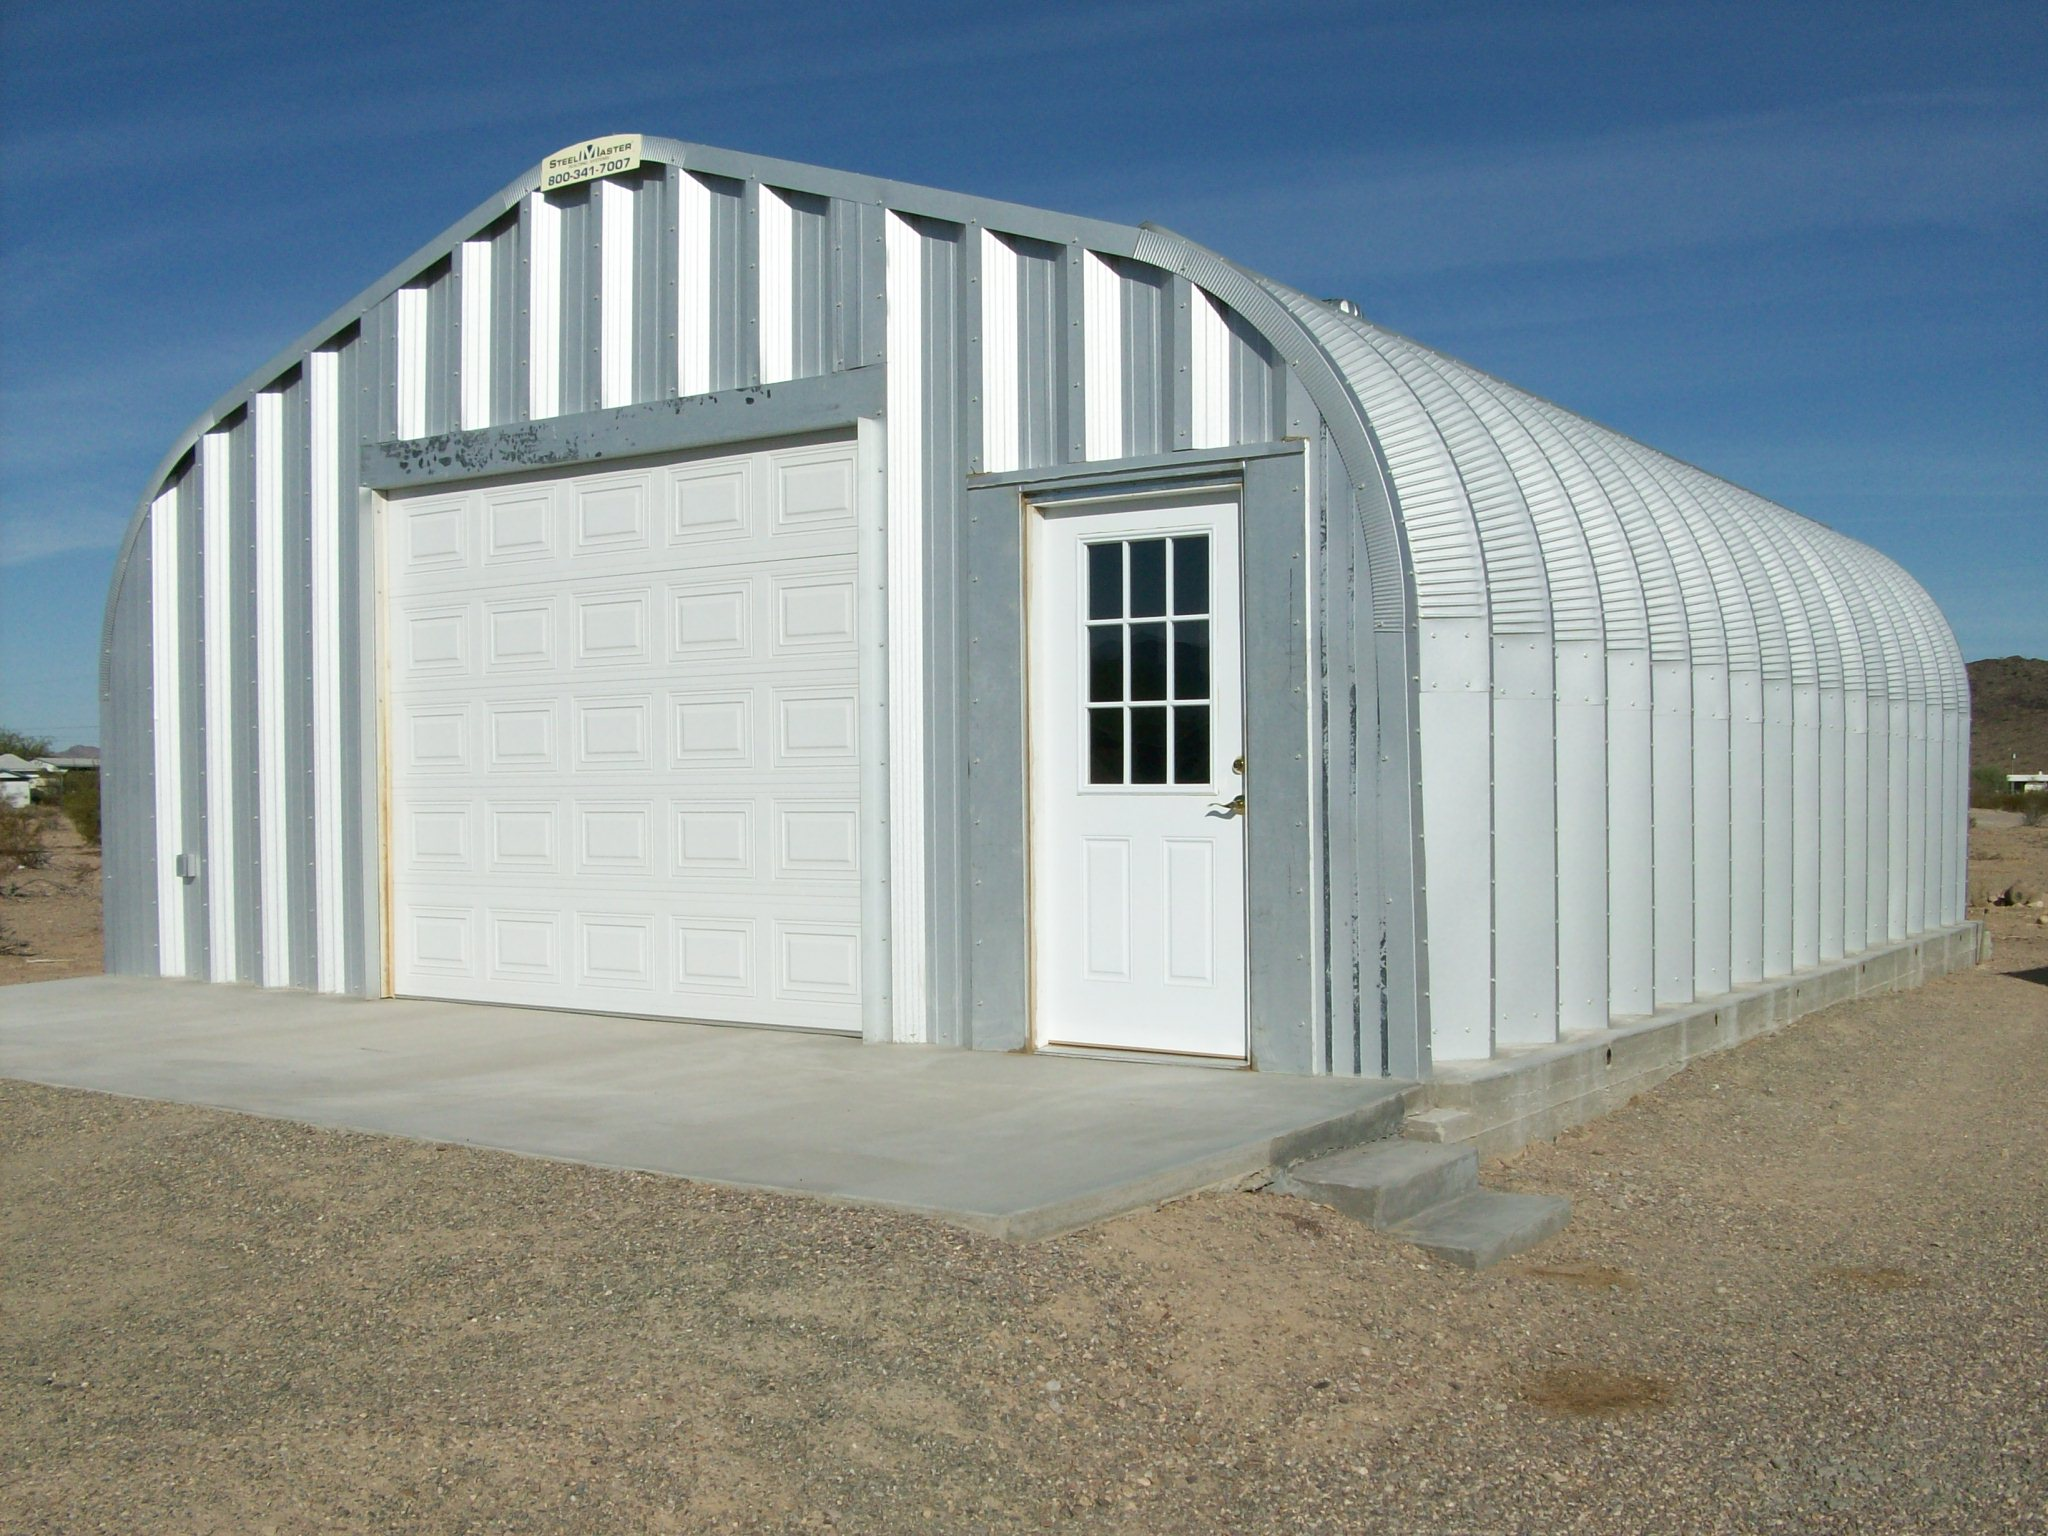 Fine Designed Prefab Garage With Visual Simplicity : Steel Building Metal Prefab Garage Model